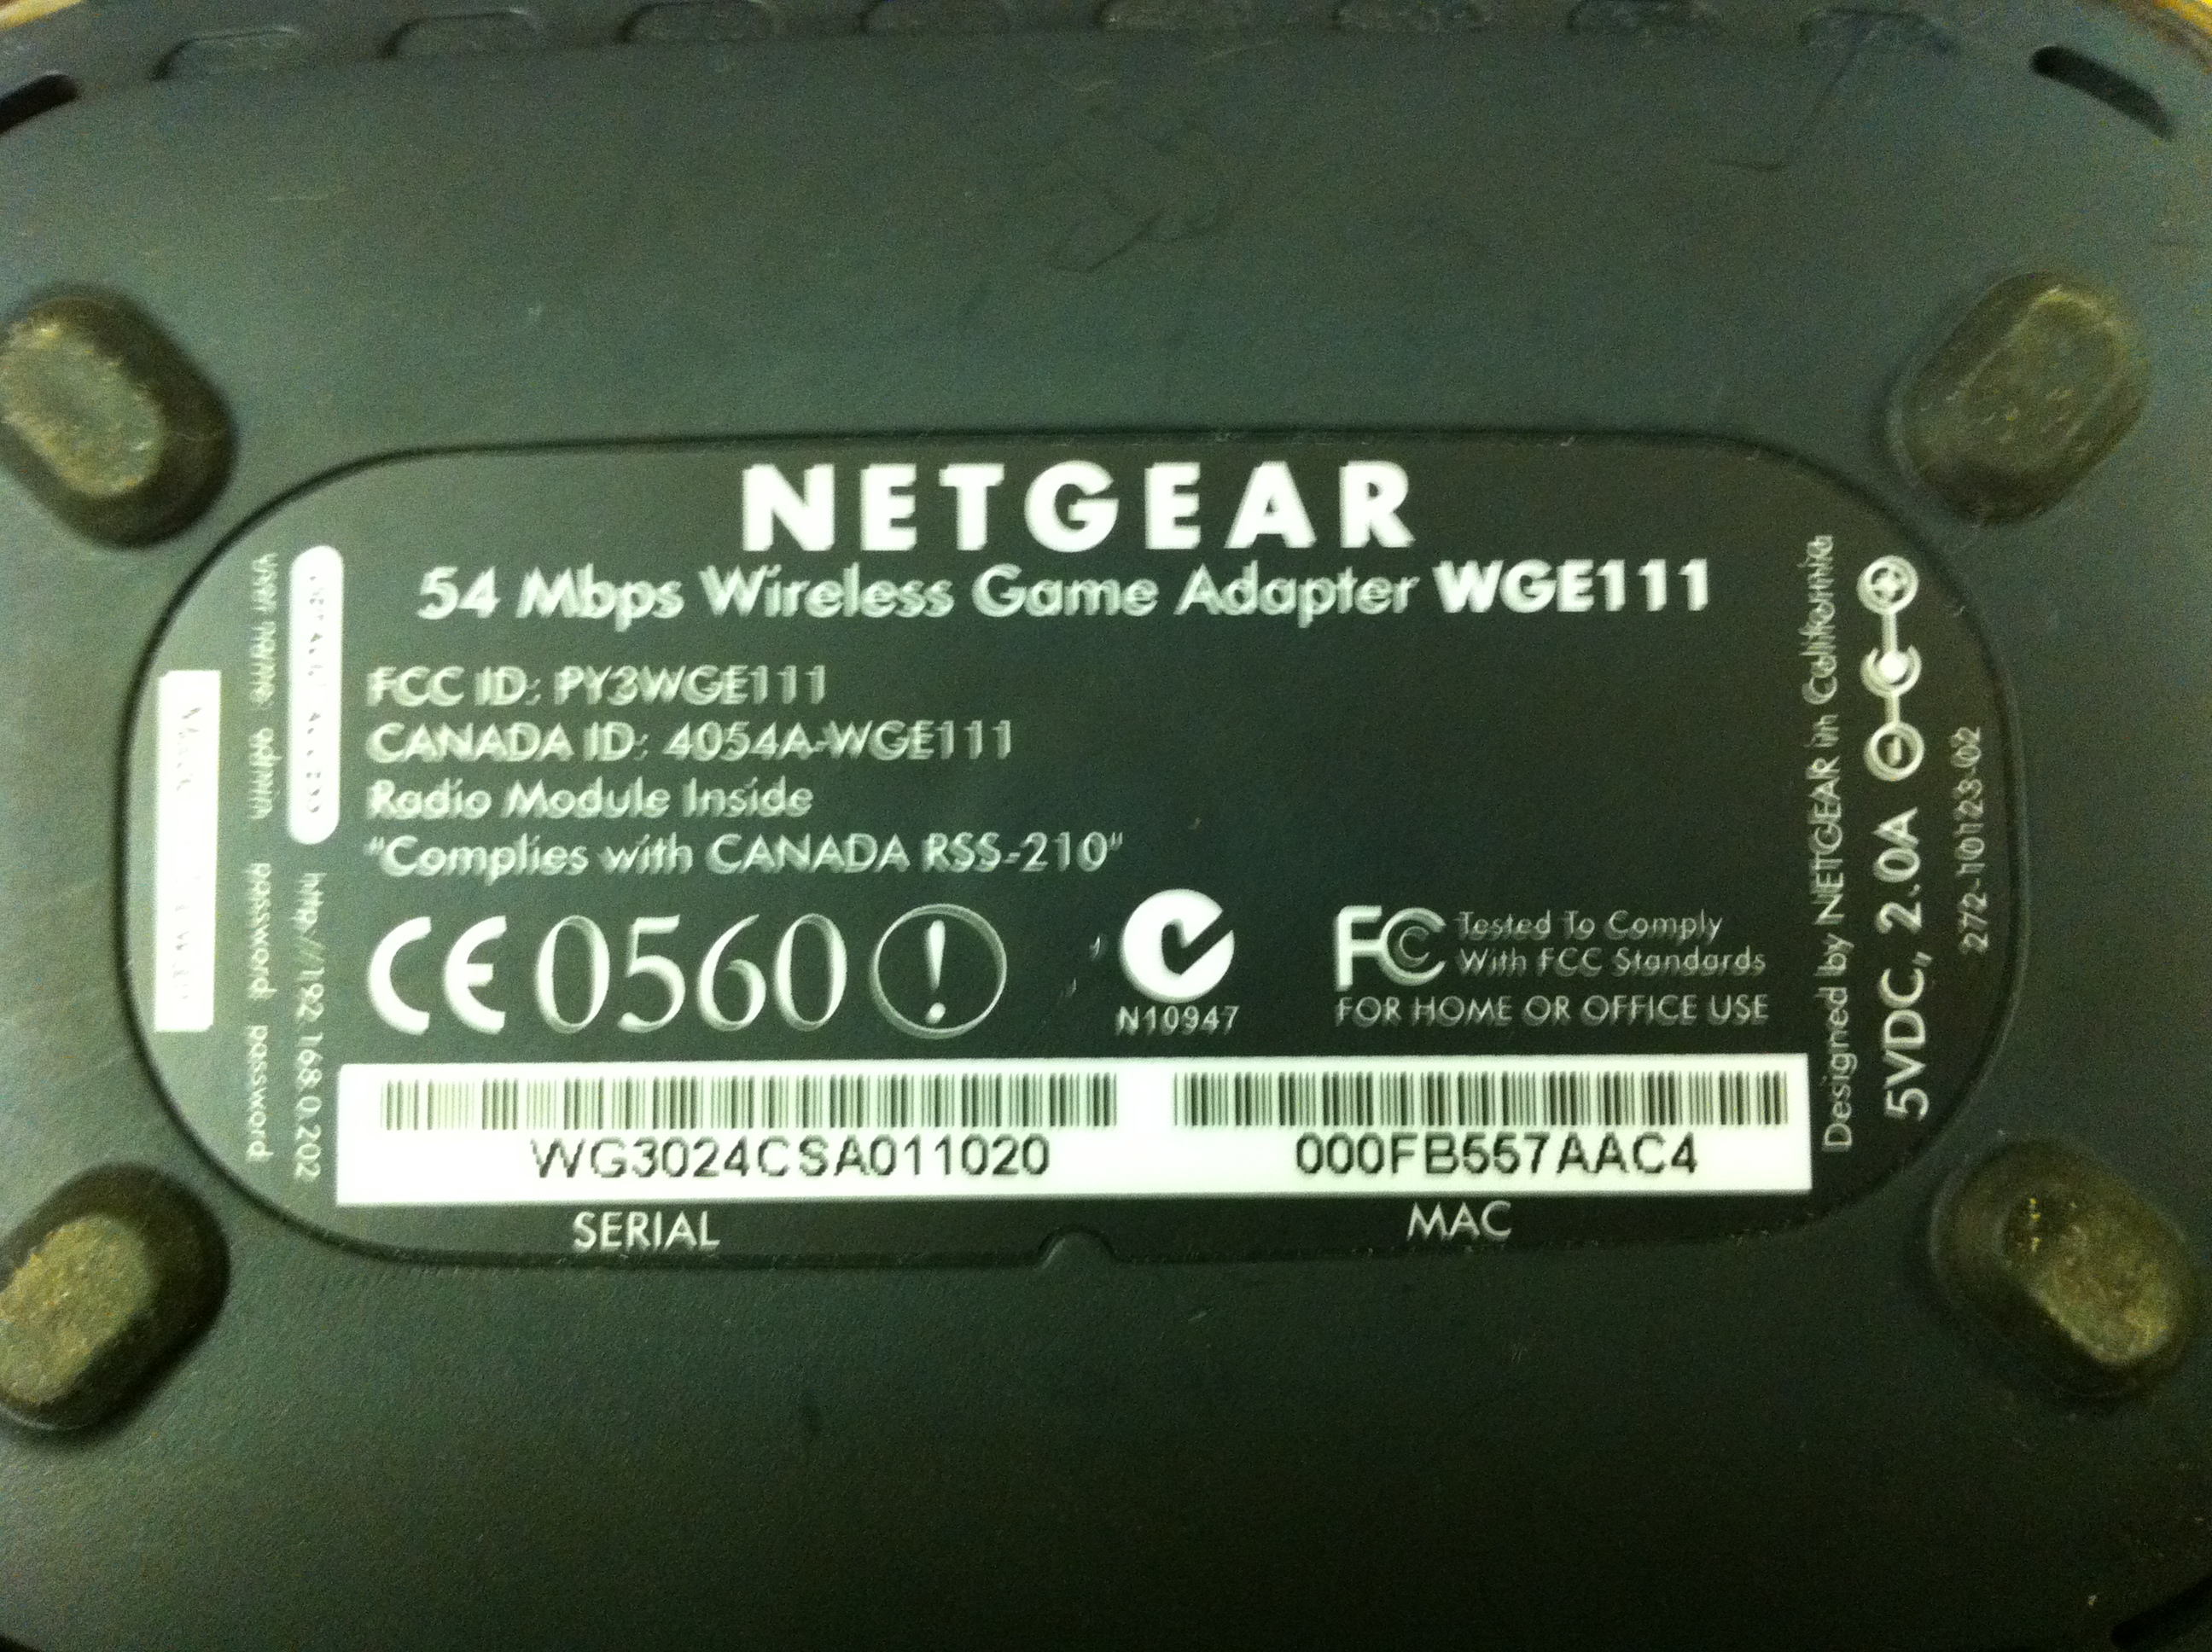 WGE111 Netgear 54Mbps Wireless Game Adapter Untested Needs Power Supply 5V 20A MediaWGE111JPG